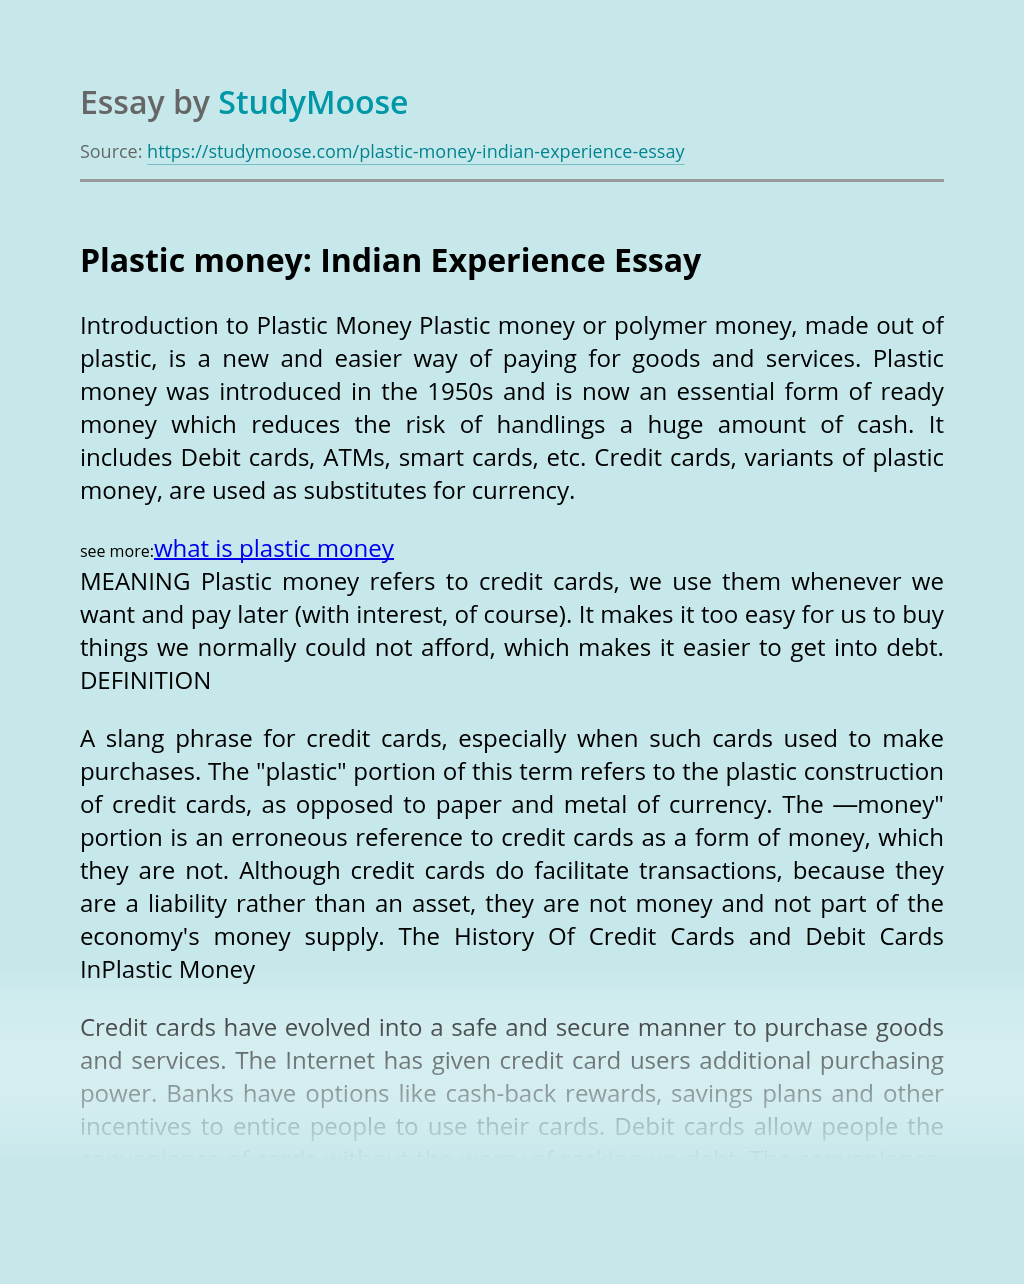 Plastic money: Indian Experience